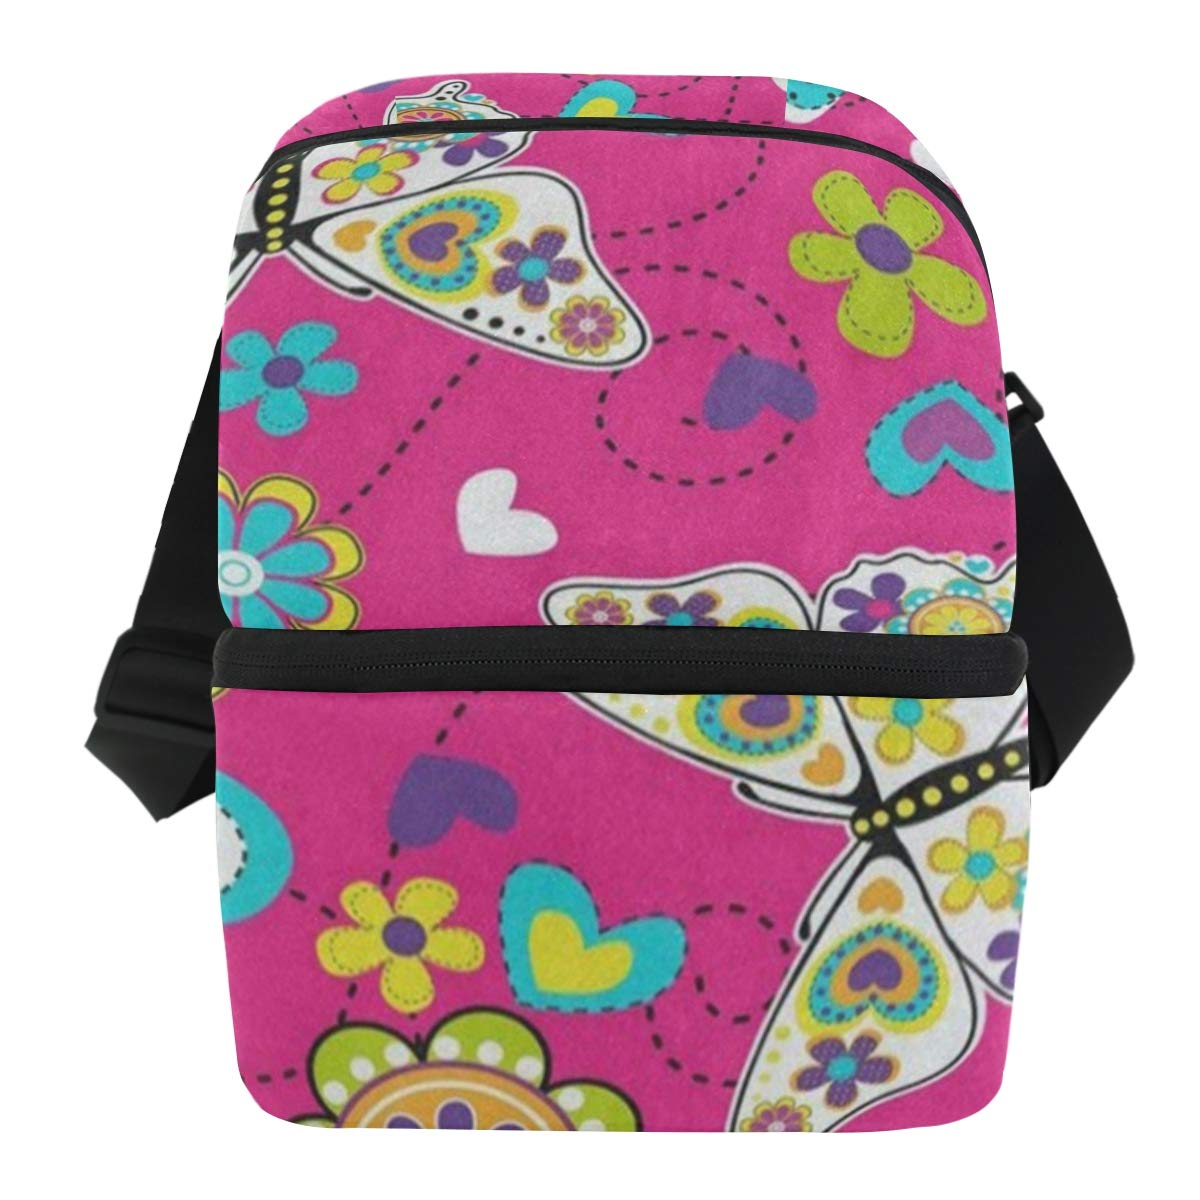 Lunch Bag Bright Floral Print Butterfly Portable Cooler Bag Mens Leakproof Thermos Box Zipper Tote Bags for Lunch